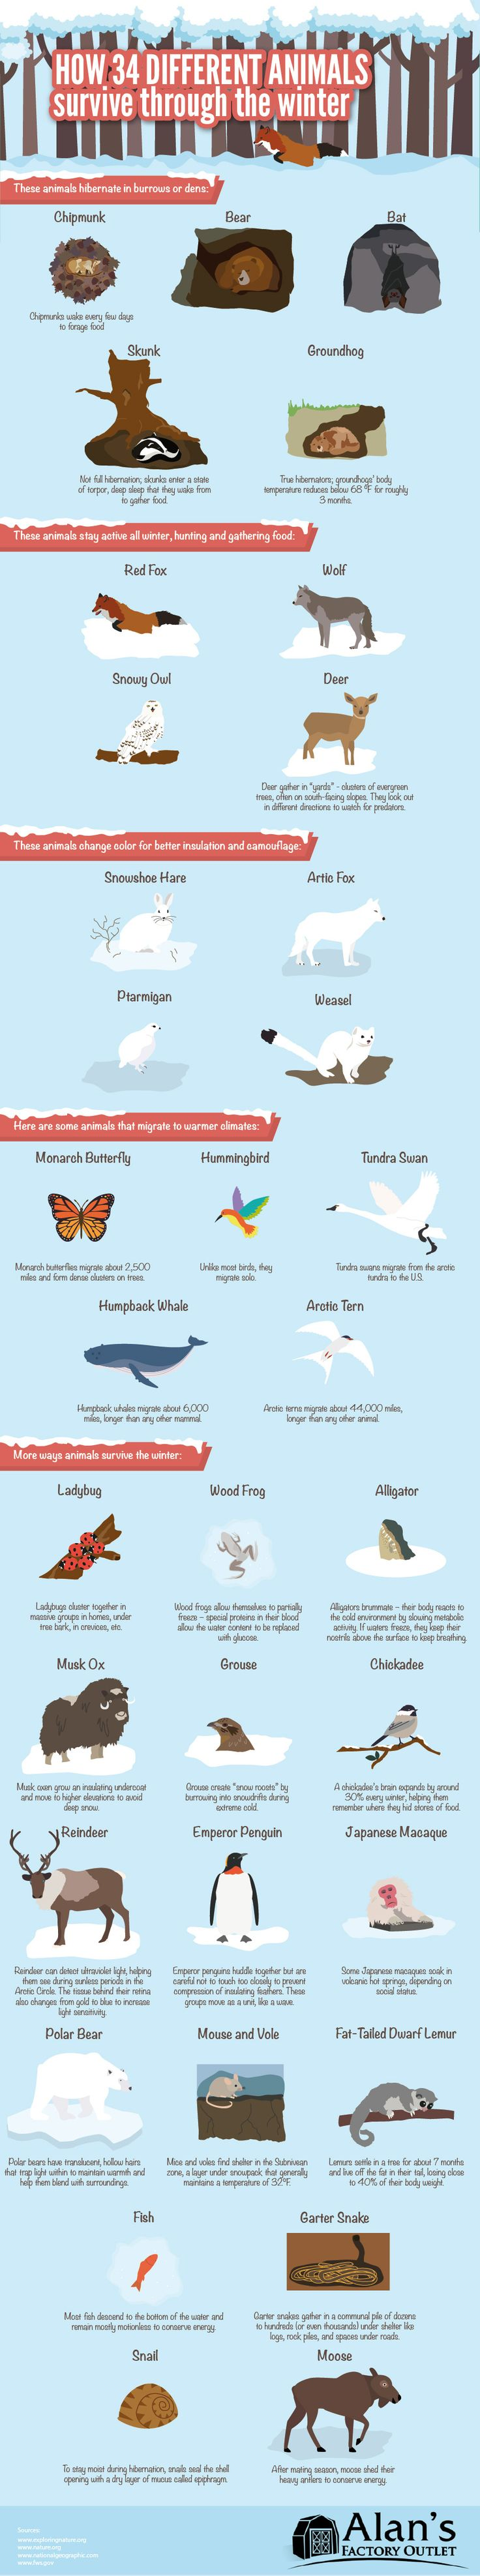 As you hustle through the bitter cold and dark to your car after a long day of work, do you ever wonder how animals survive in the winter? It is common knowledge that many species of birds migrate thousands of miles to warmer climates, but did you know that some butterflies and whales also embark on epic journeys to escape the freeze? In the following infographic, Alan's Factory Outlet looks at how 34 different animals survive through the winter.